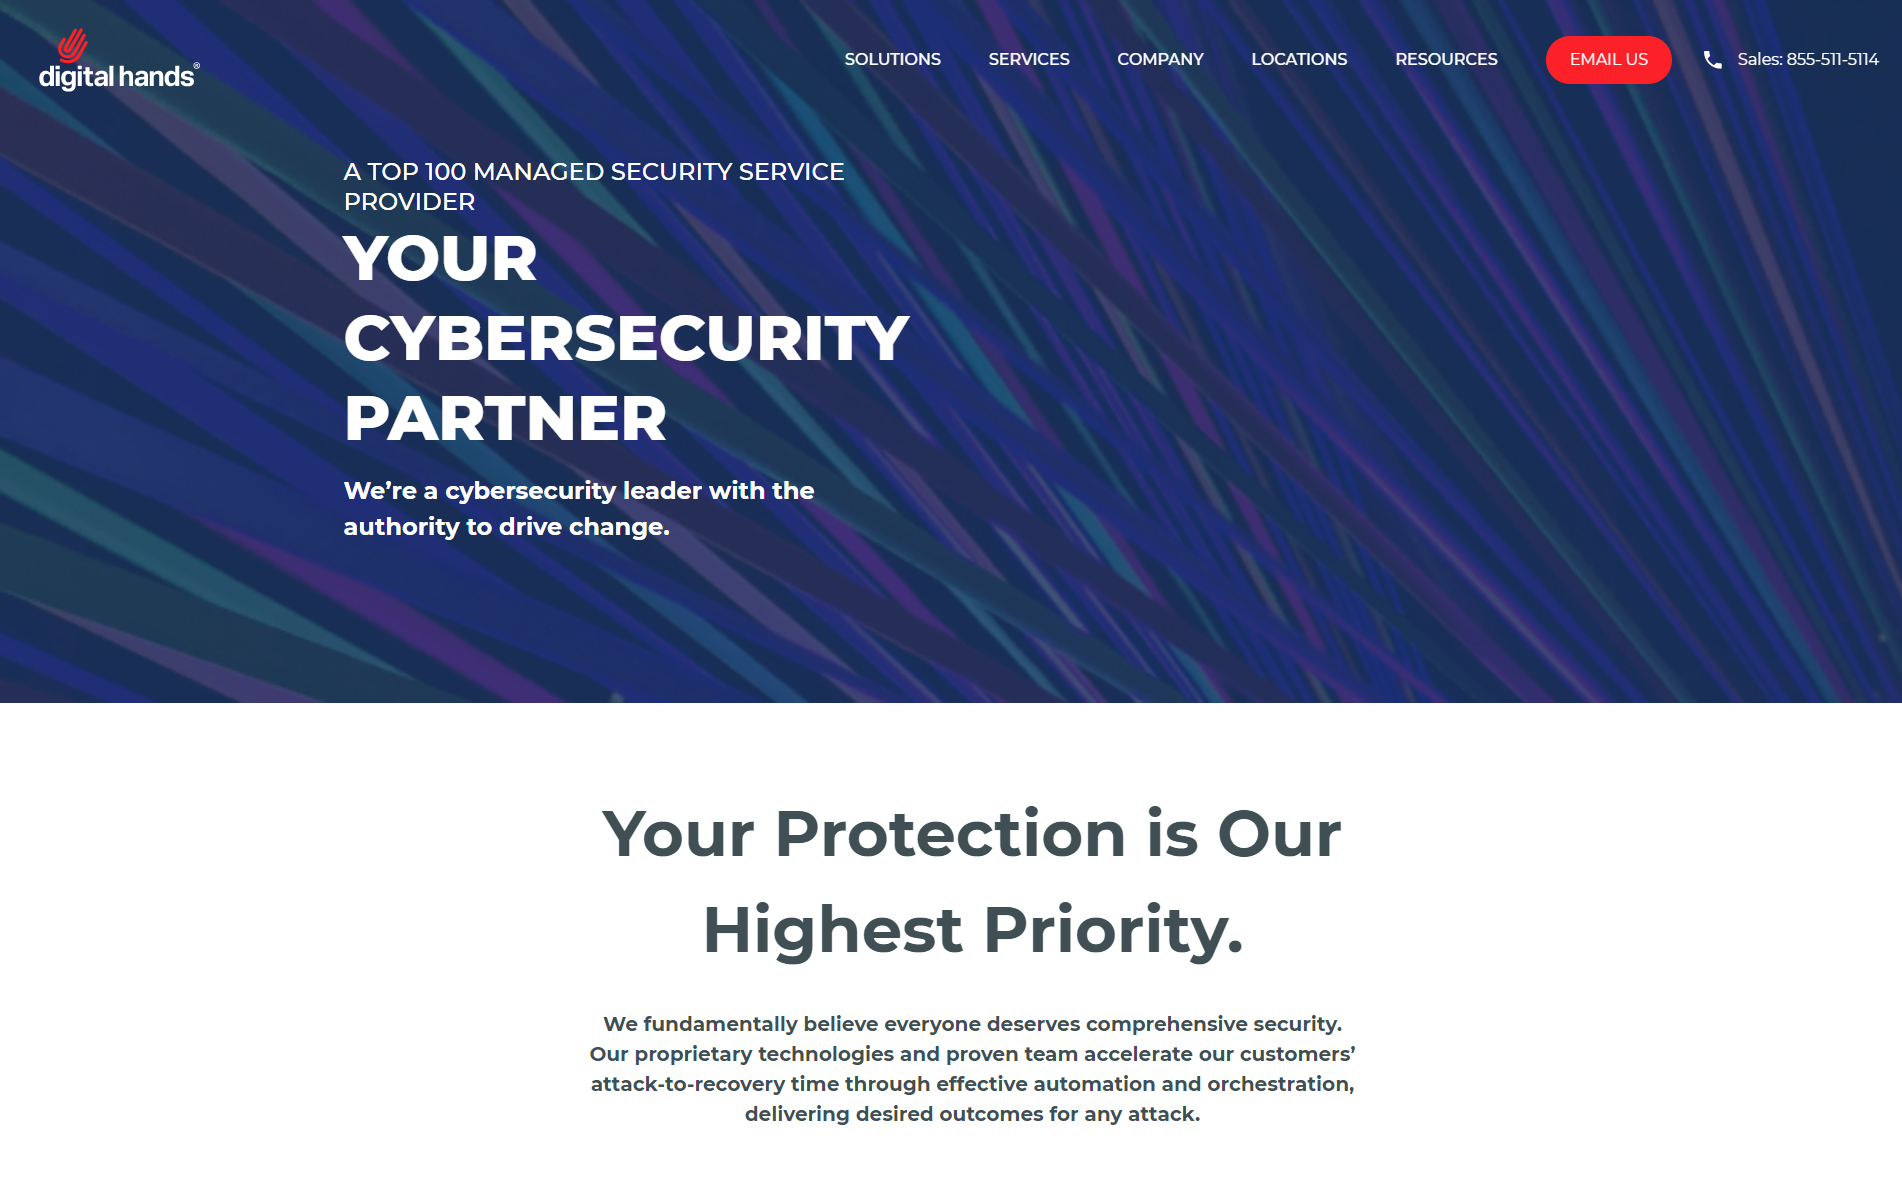 Digital Hands Enterprise-grade Cybersecurity Services and Support